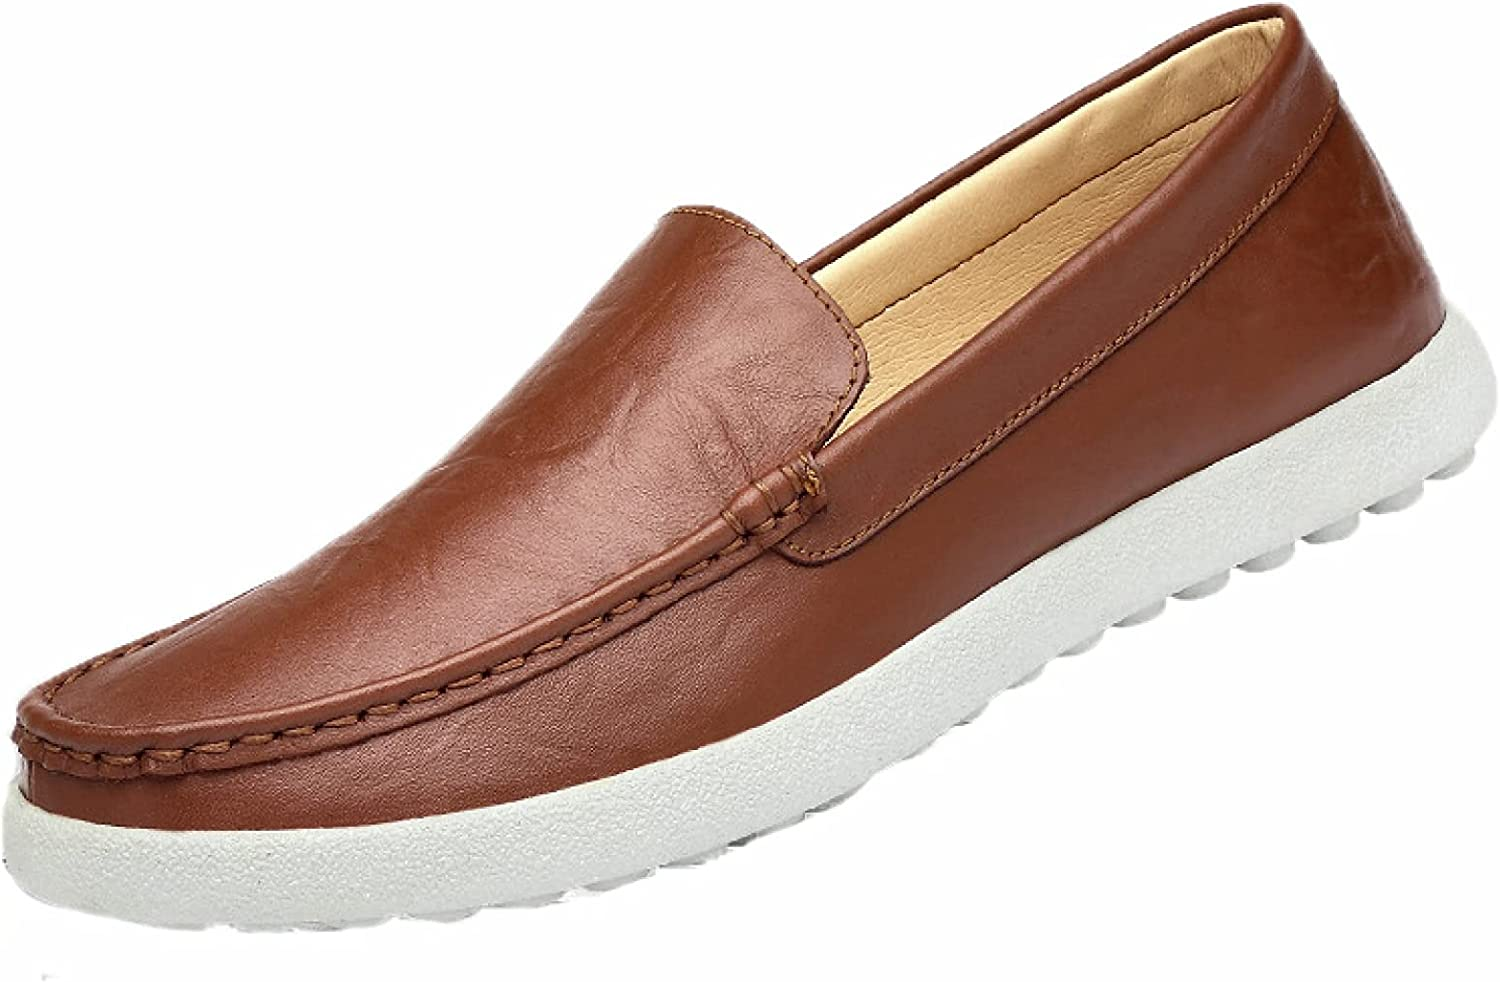 Mens Slip-on Loafer Shoes Durable Hiking Easy to Wear Put-on Leather Lightweight Thick Bottom Flat Loafers for Teenager